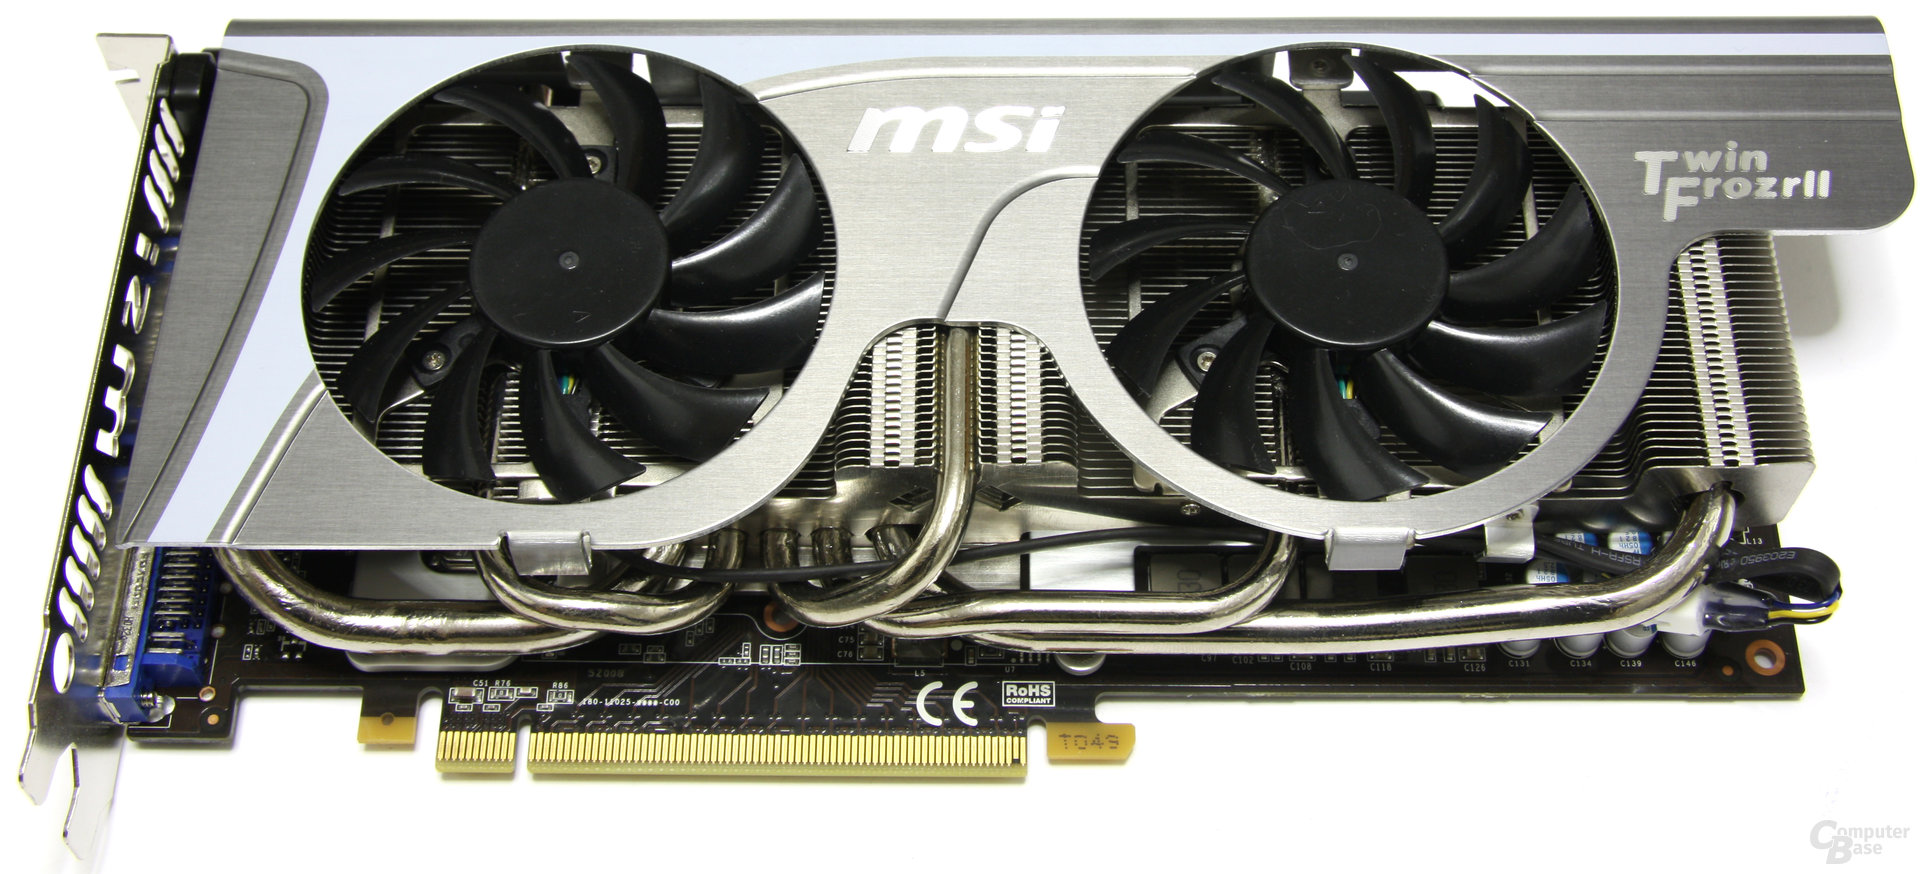 MSI GeForce GTX 470 Twin Frozr II